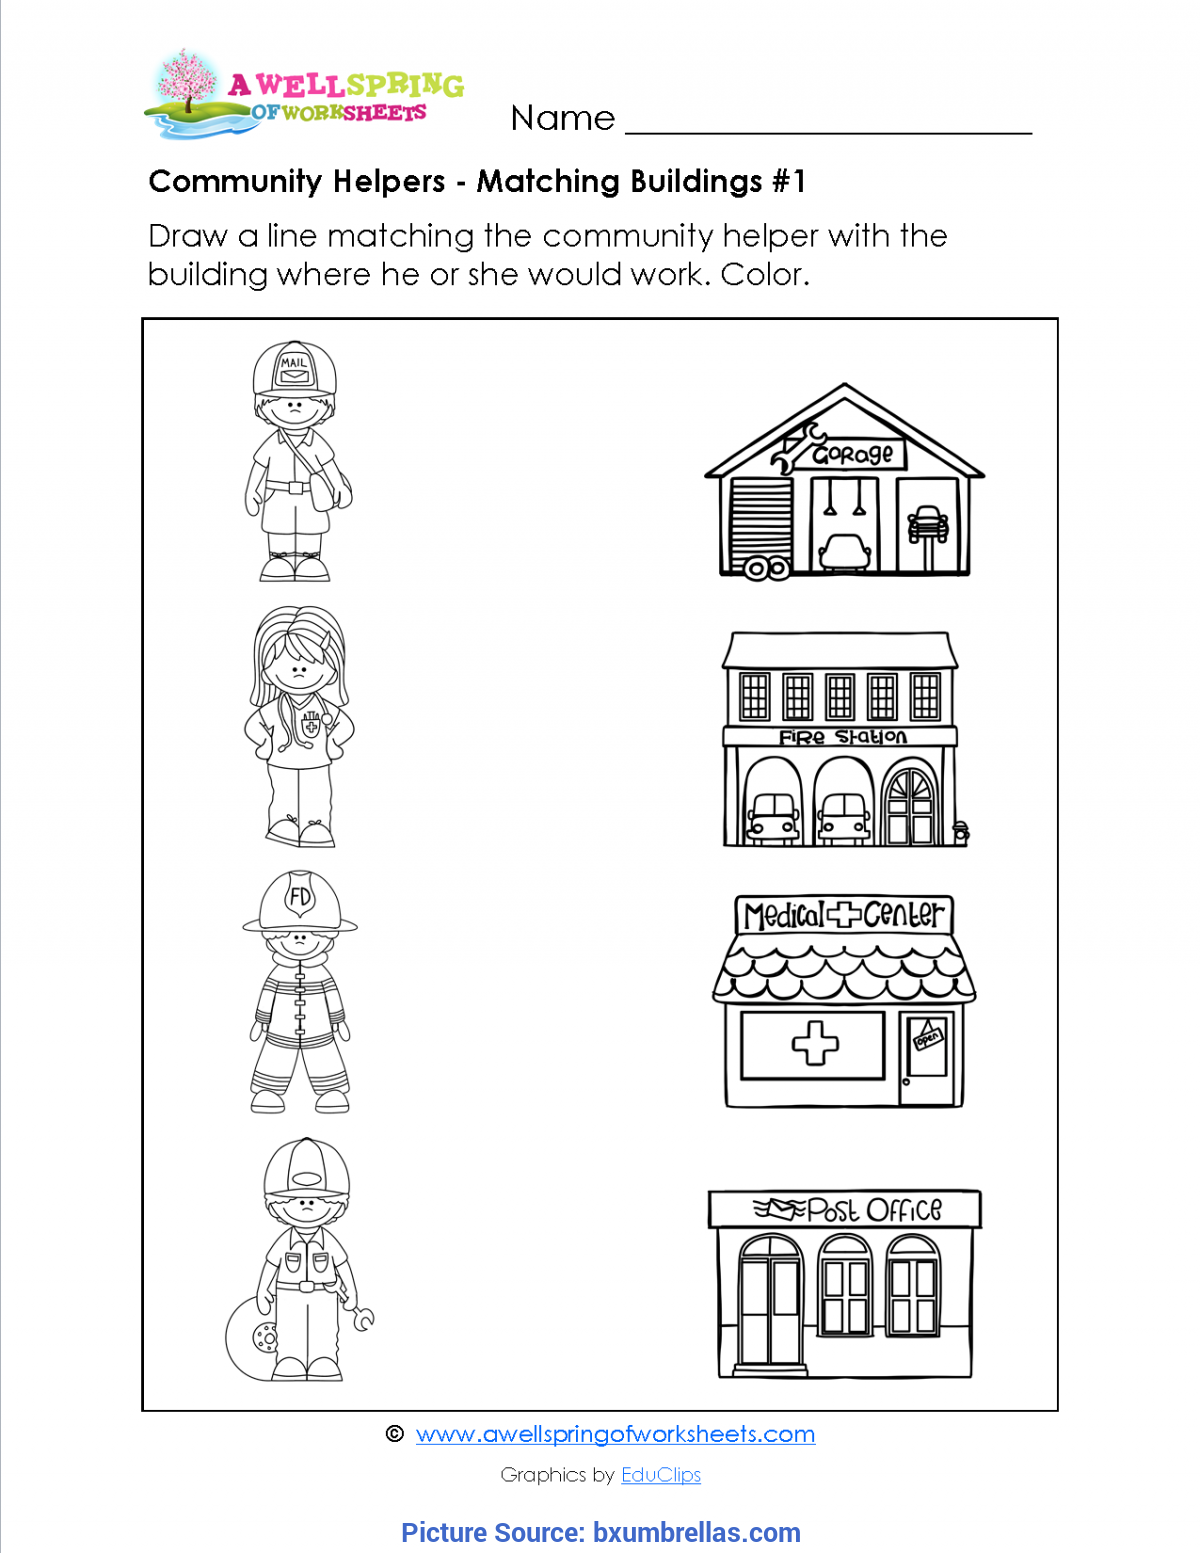 Police Car Coloring Pages Police Car Coloring Pages To Print Collection Printable  Police Car Coloring Pages D Download Coloring Pages Detail Name Police Car  Police Car Coloring Pages Online – timothyfregoso.club | 1553x1200